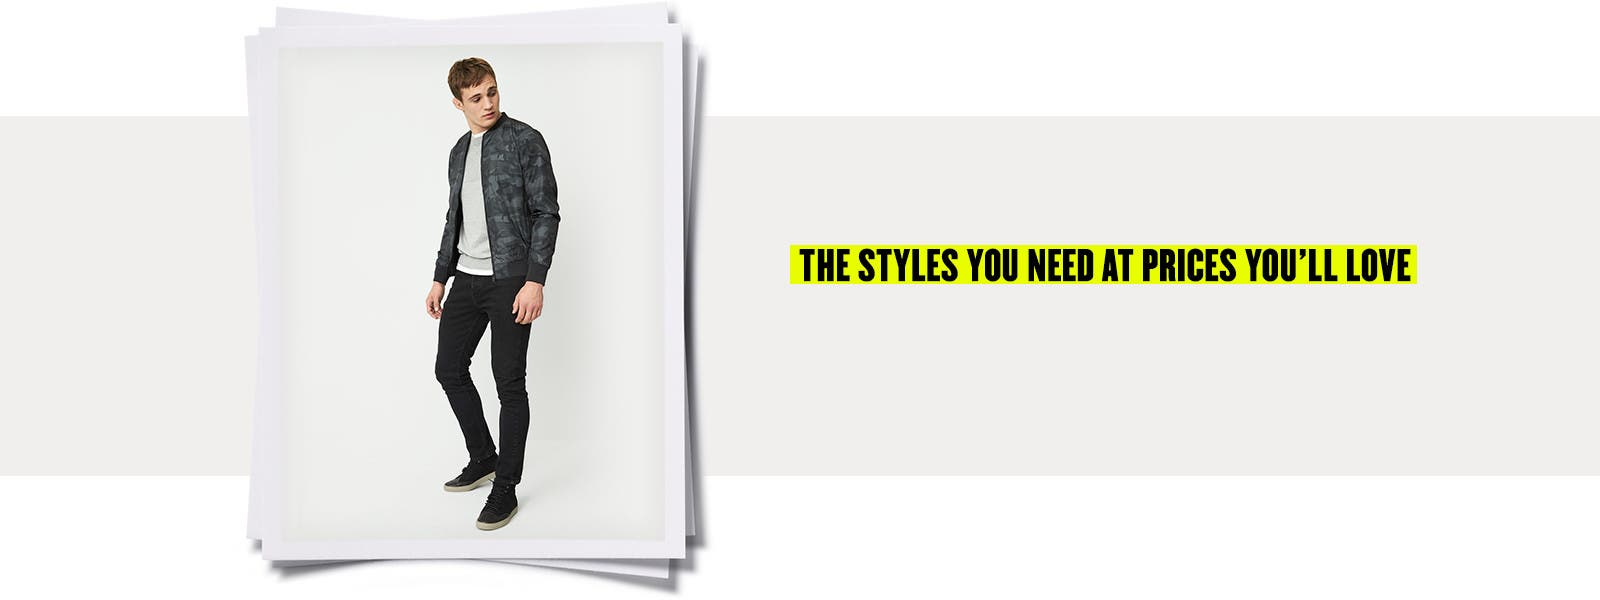 The men's trend styles you need at prices you'll love.